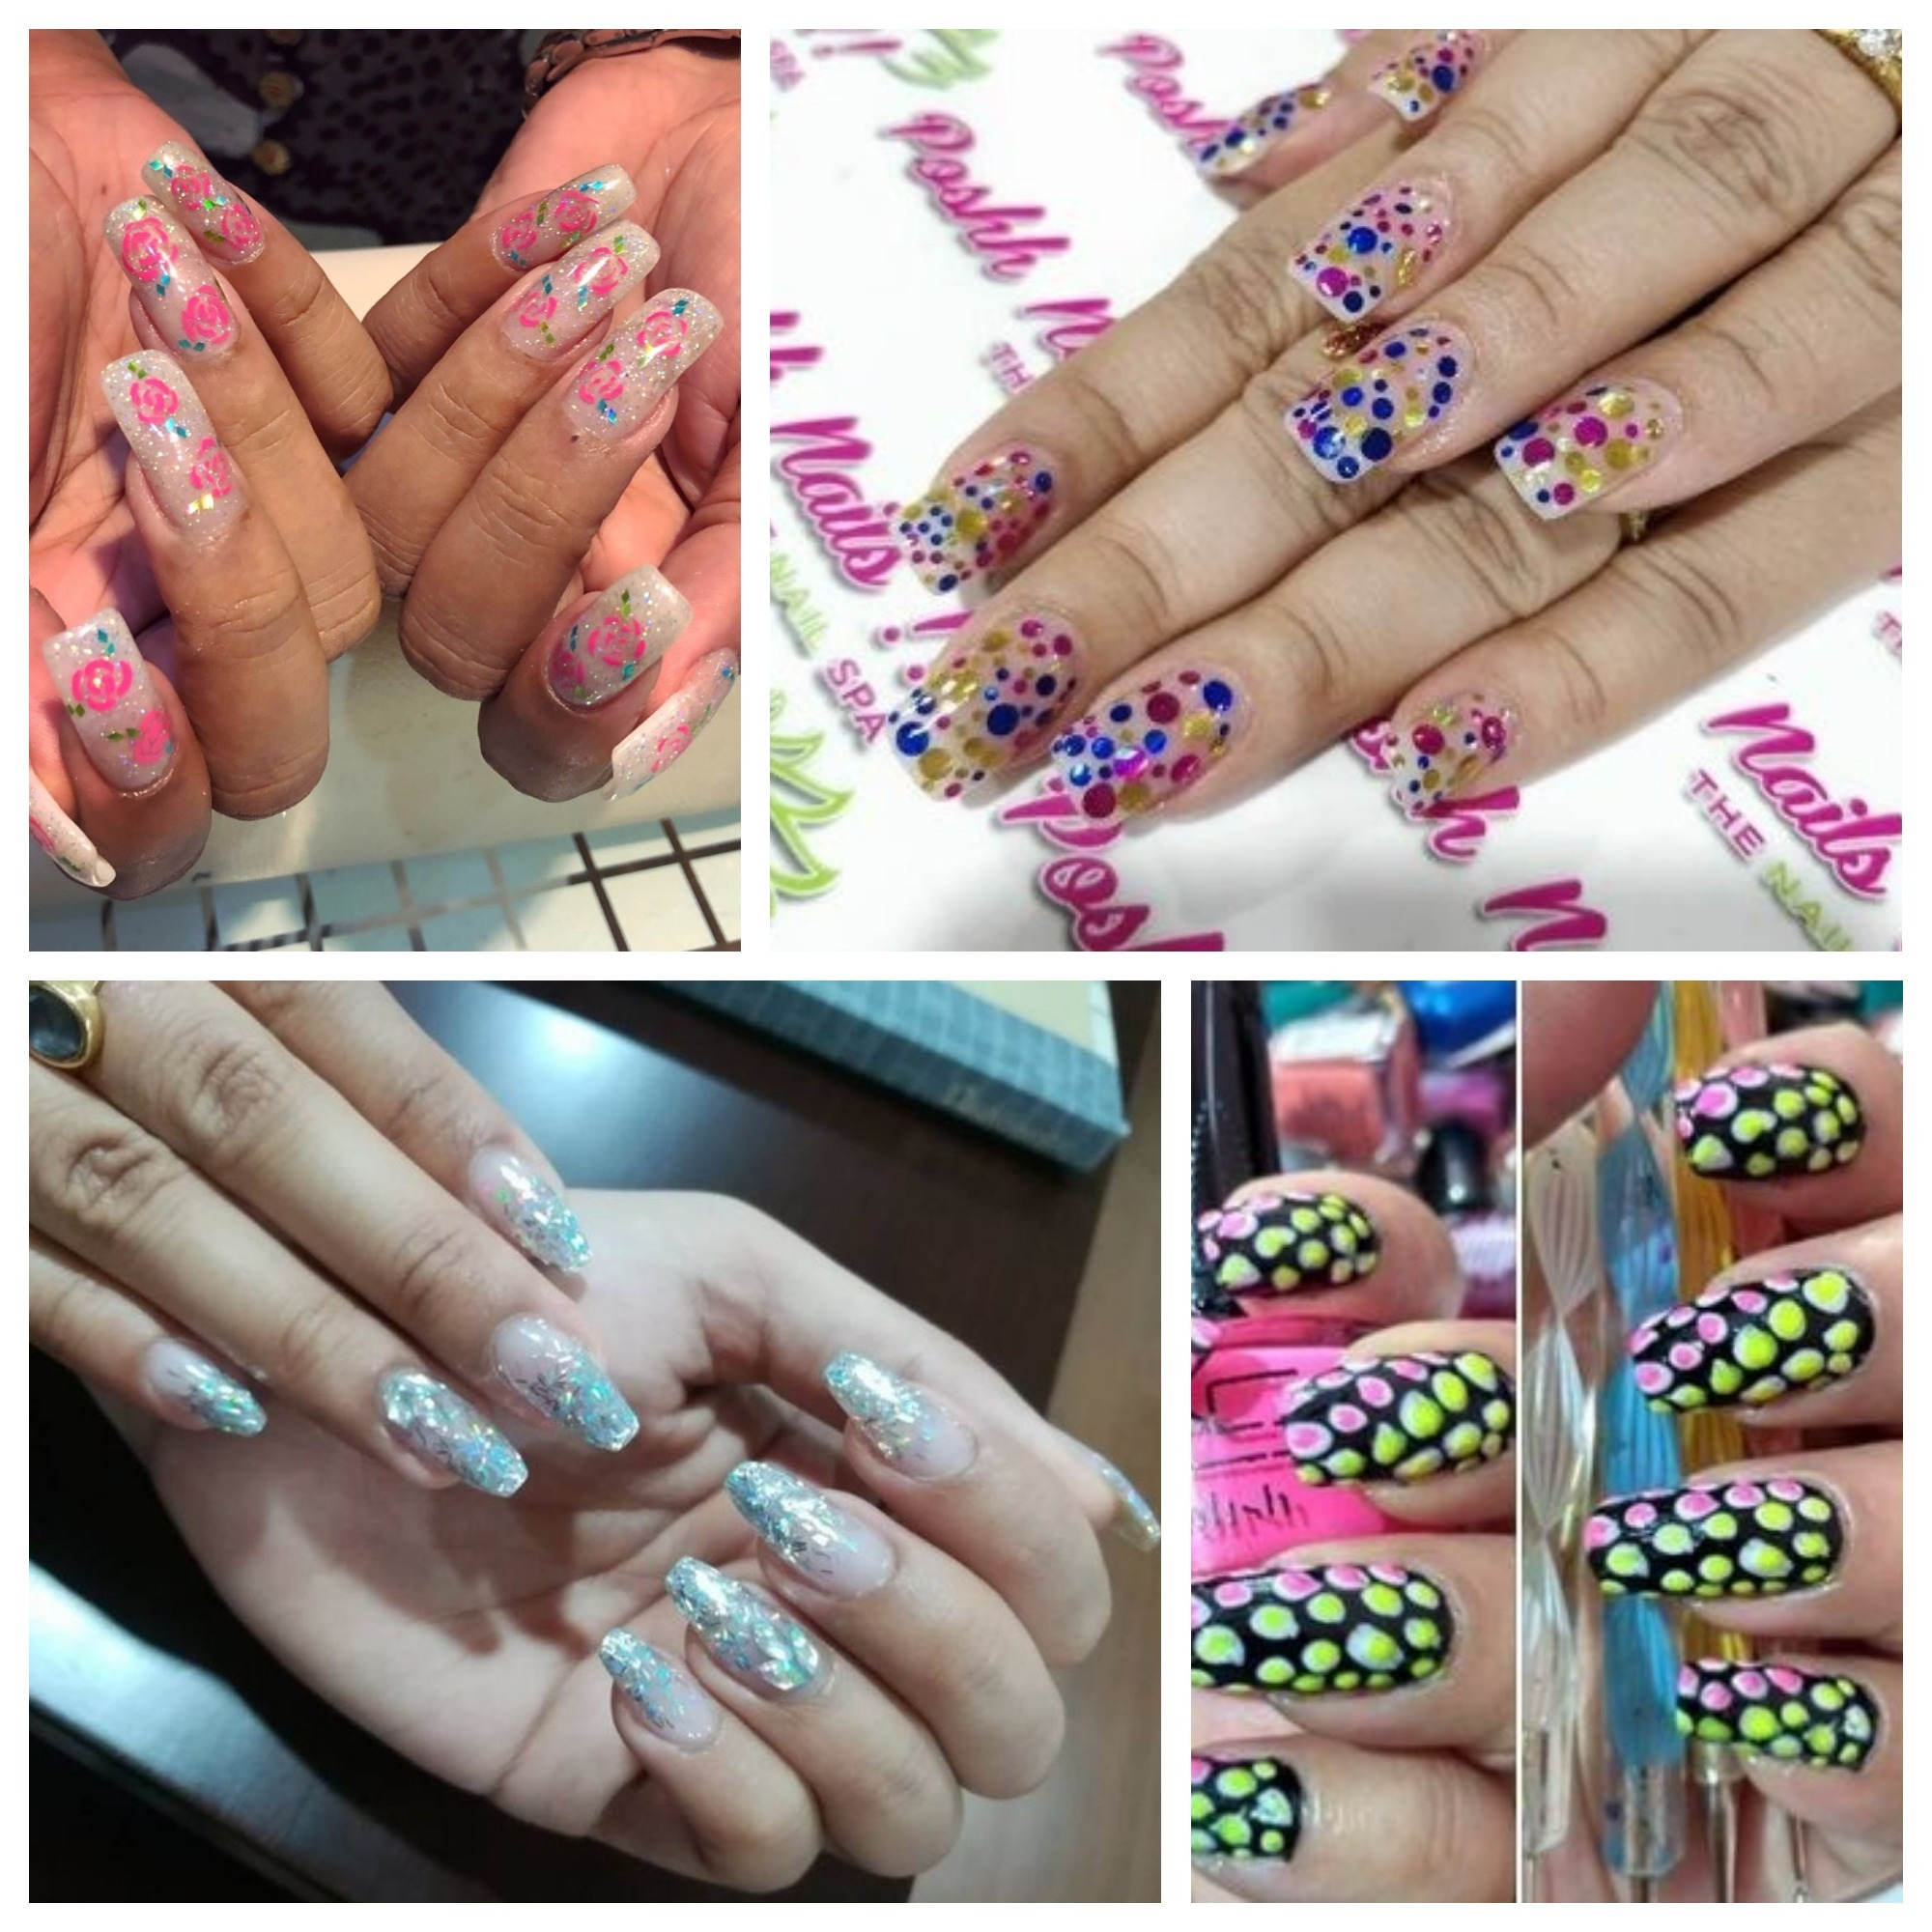 Know the nail art trend catching up in Odisha | OdishaSunTimes.com